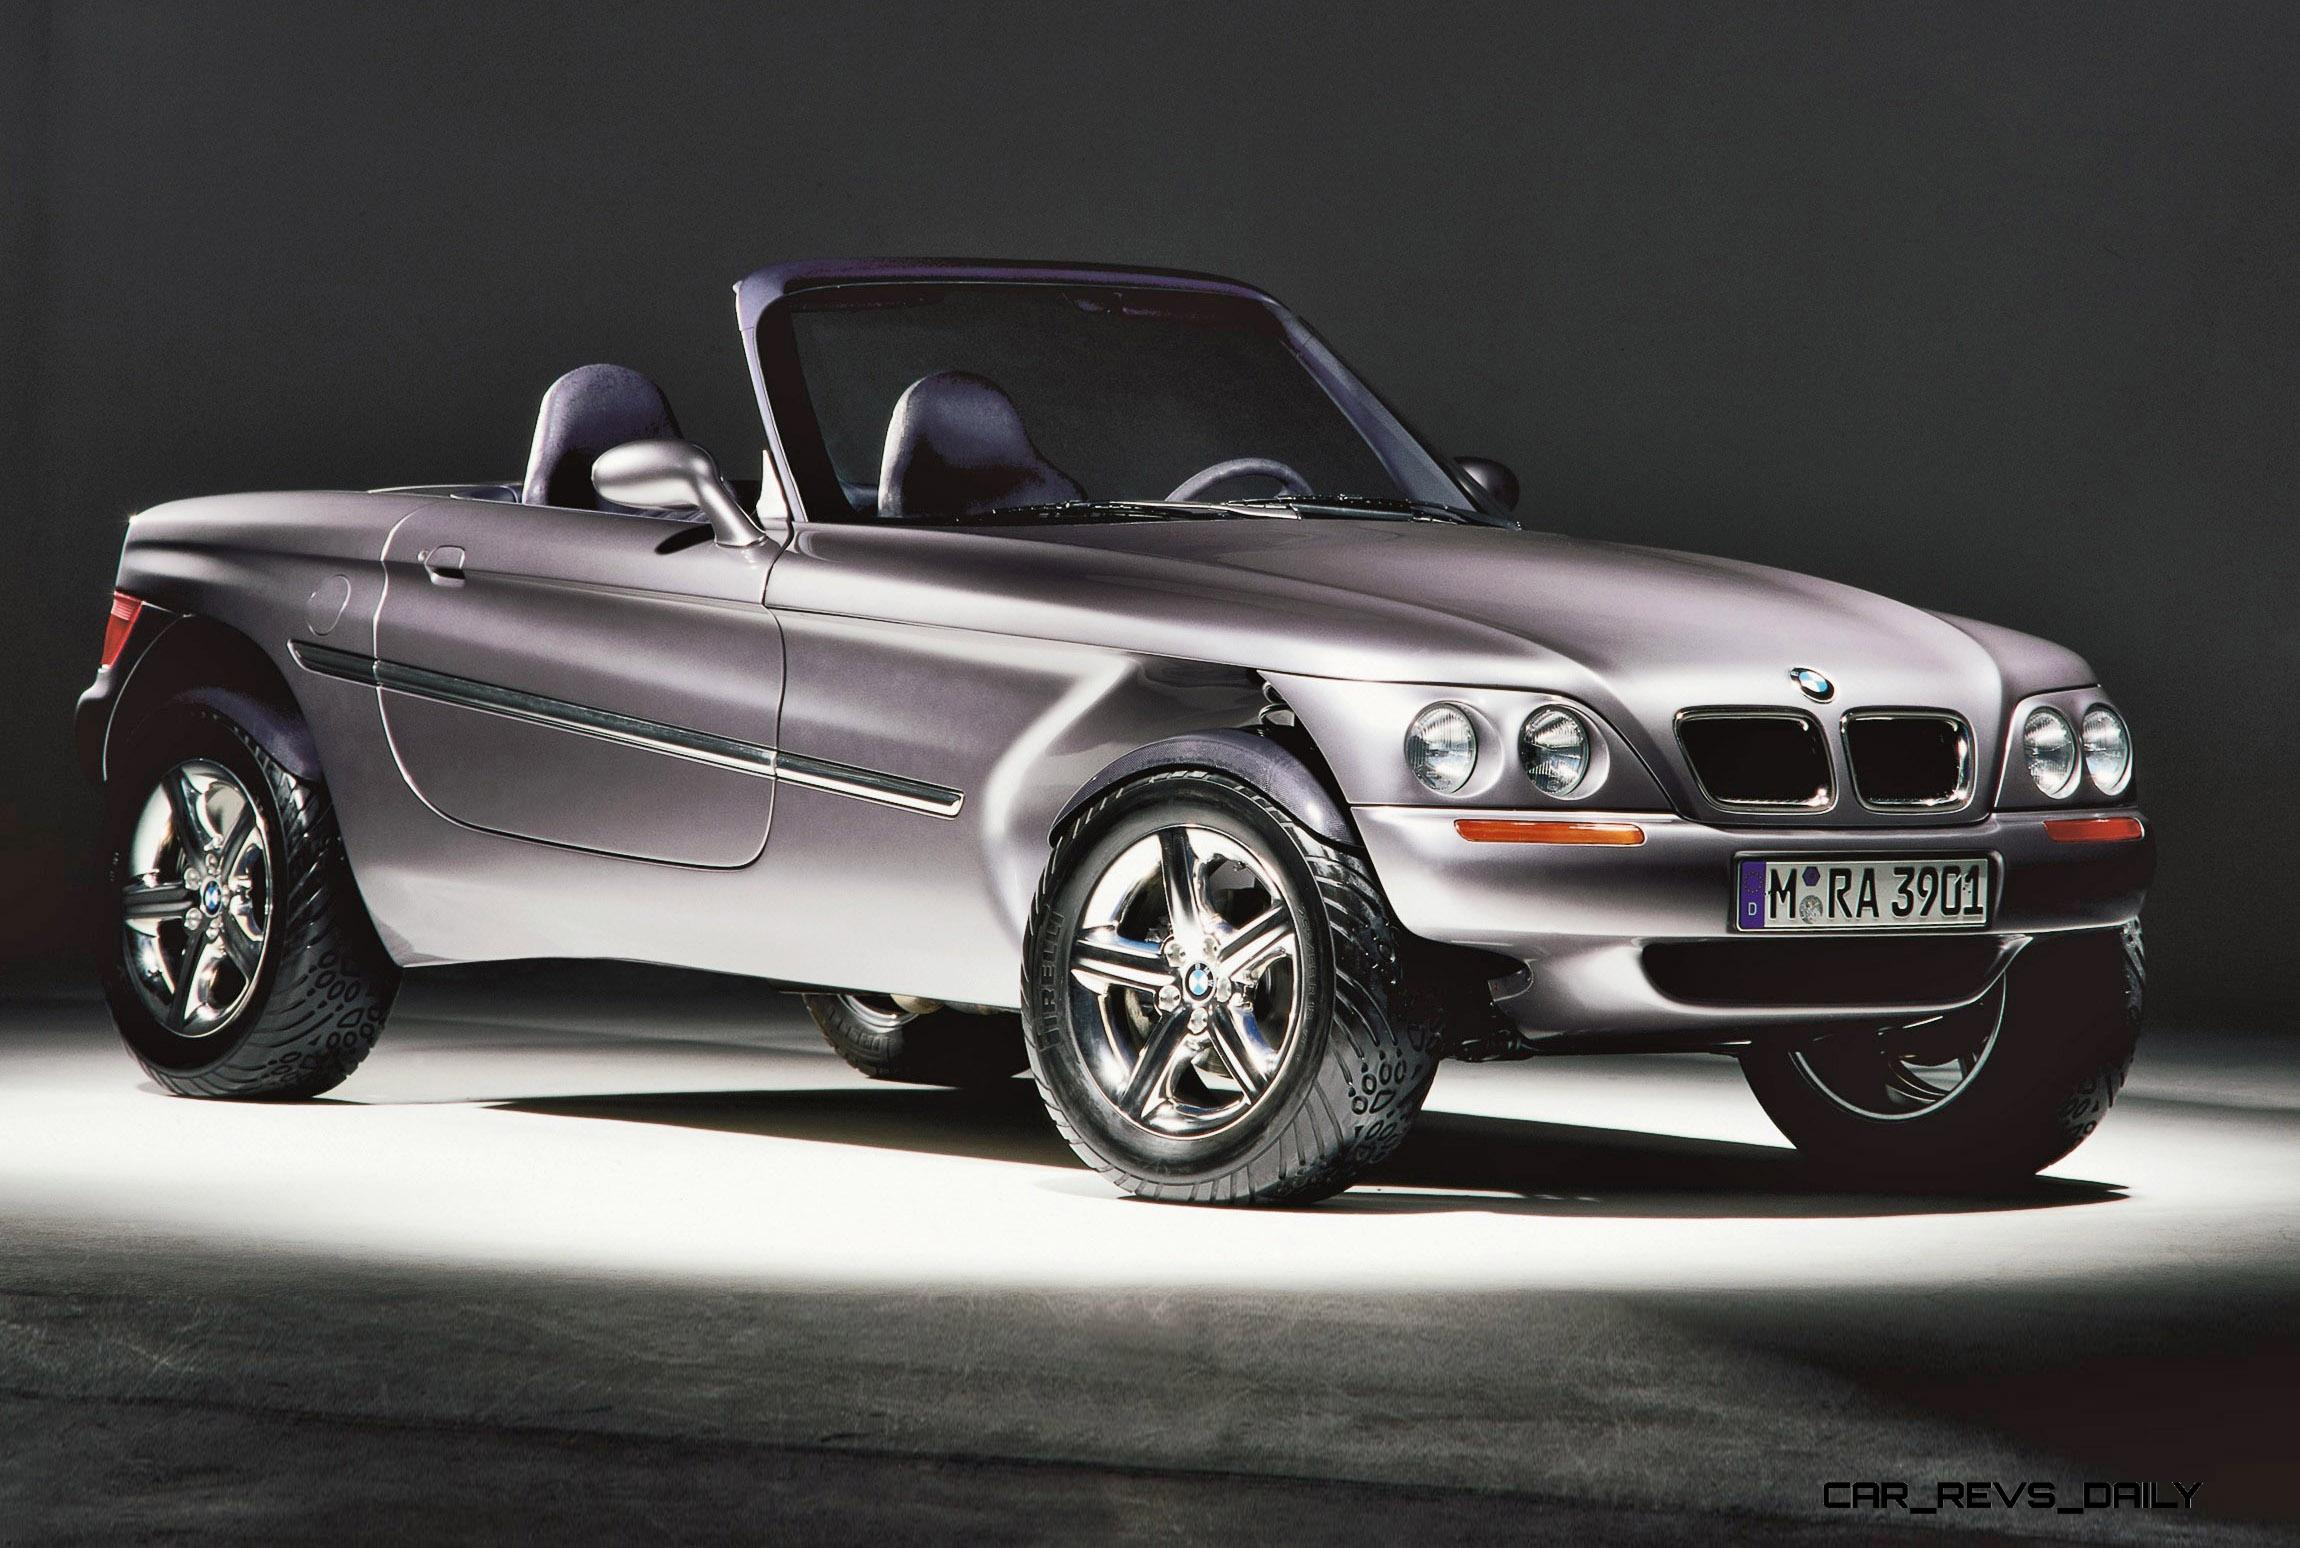 Concept Flashback - 1995 BMW Z18 is Fascinating Rally Roadster